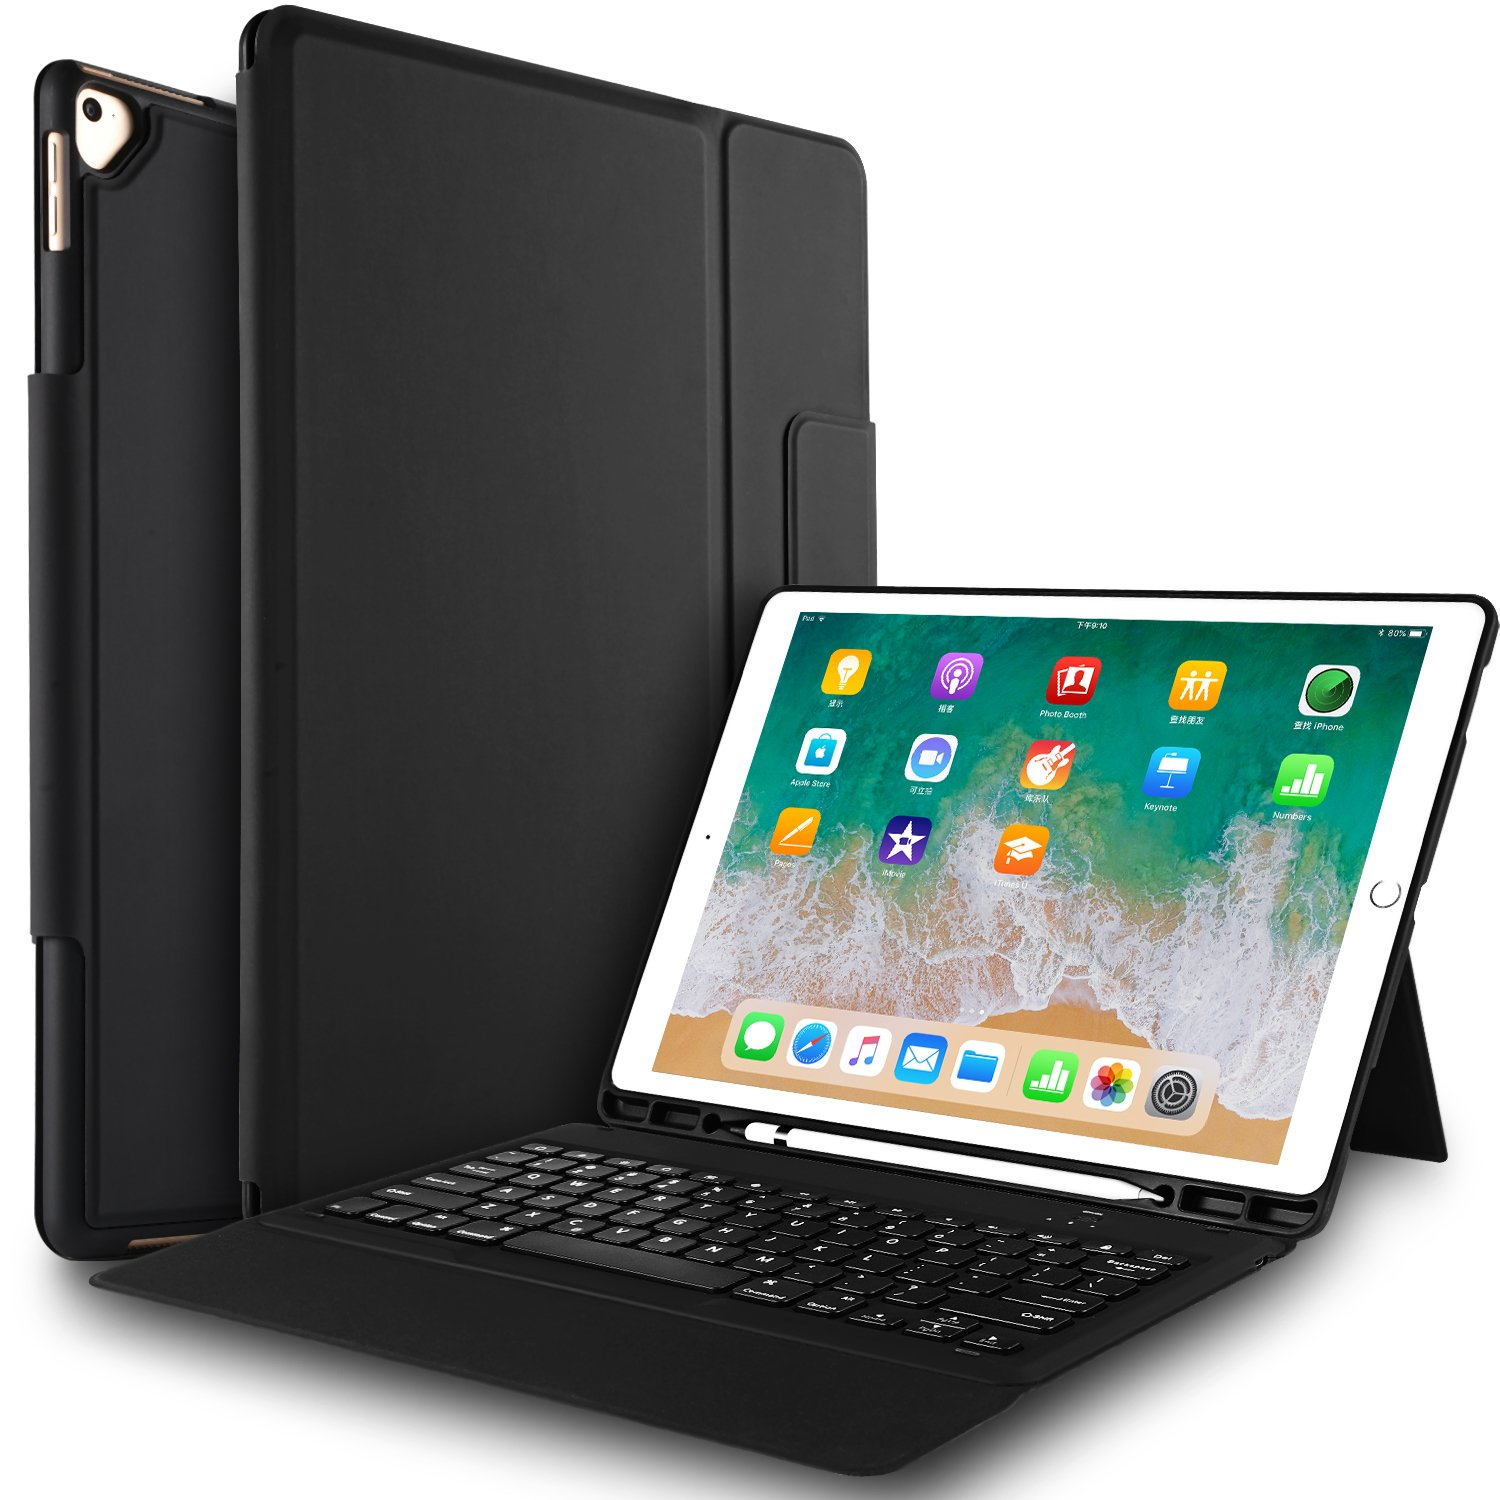 IVSO ipad pro 12.9 Case with Keyboard -Lightweight One-Piece Wireless Keyboard Stand Case/Cover with Pencil Slot for Apple ipad pro 12.9'' 1st Gen 2015 / ipad pro 12.9'' 2nd Gen 2017 Tablet(Black) by IVSO